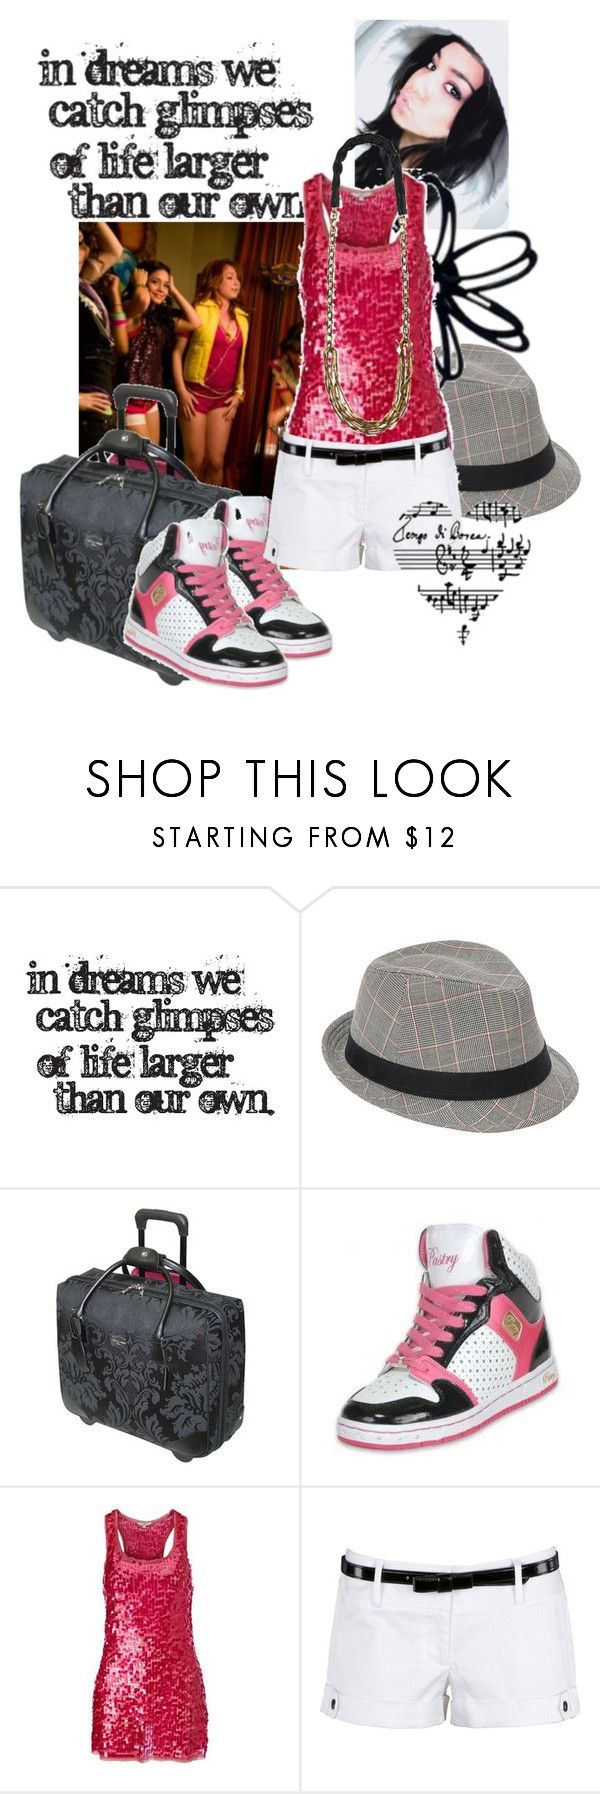 """on tour!"" by flawlessy ❤ liked on Polyvore featuring Ecko Unltd., Tripp, H.I.P., J Dauphin, babyv, high school musical, sneaker night, hip hop, vanessa hudgens and luggage"